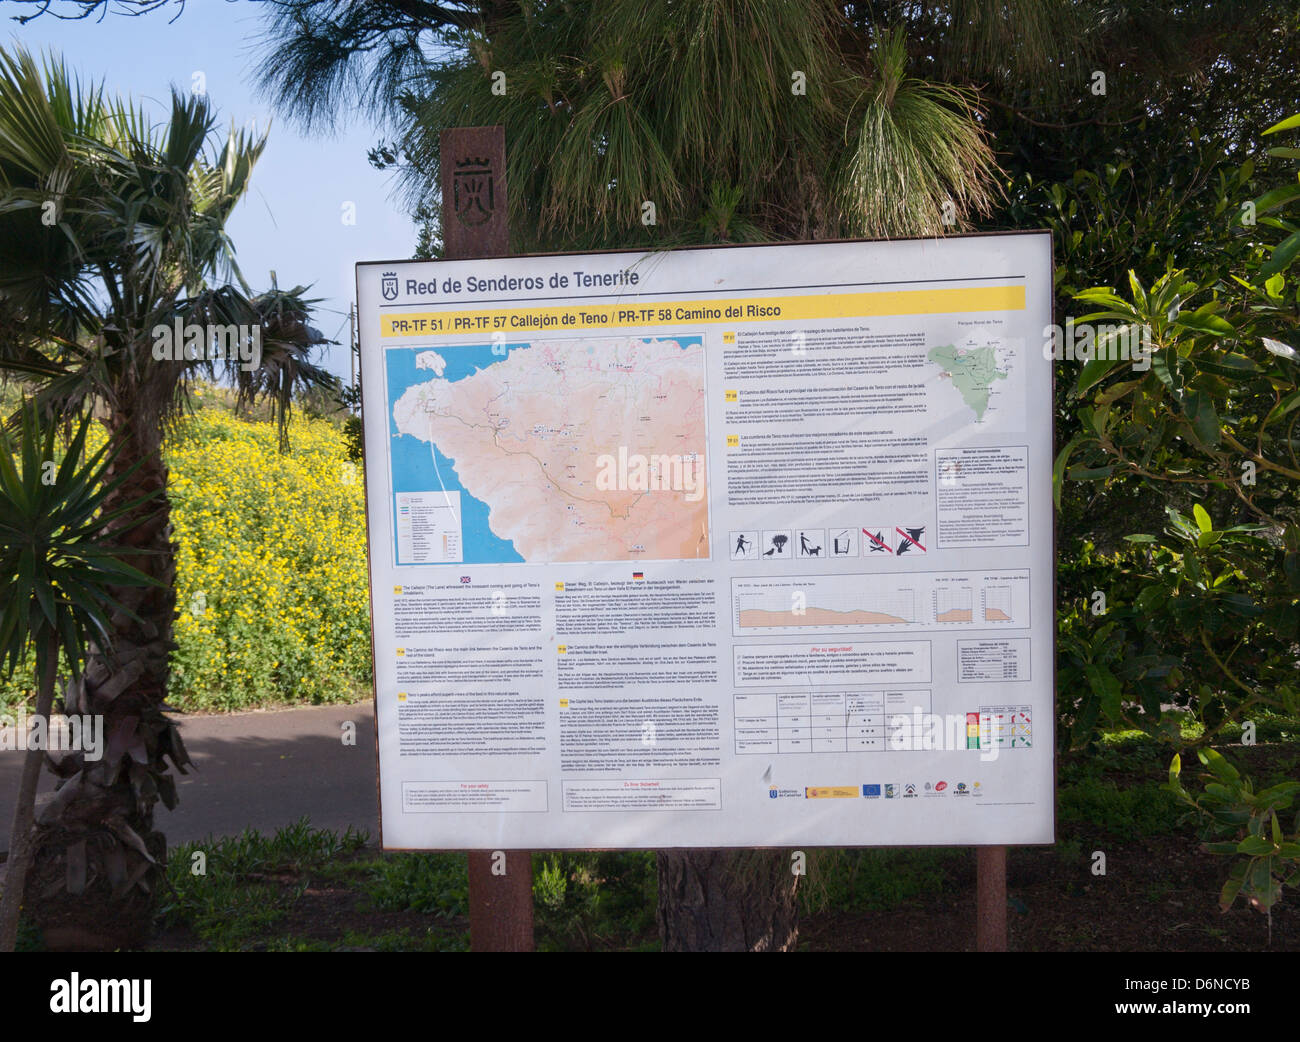 Information board about the organized footpaths in the Teno mountains in the west of Tenerife Spain set up in Teno - Stock Image